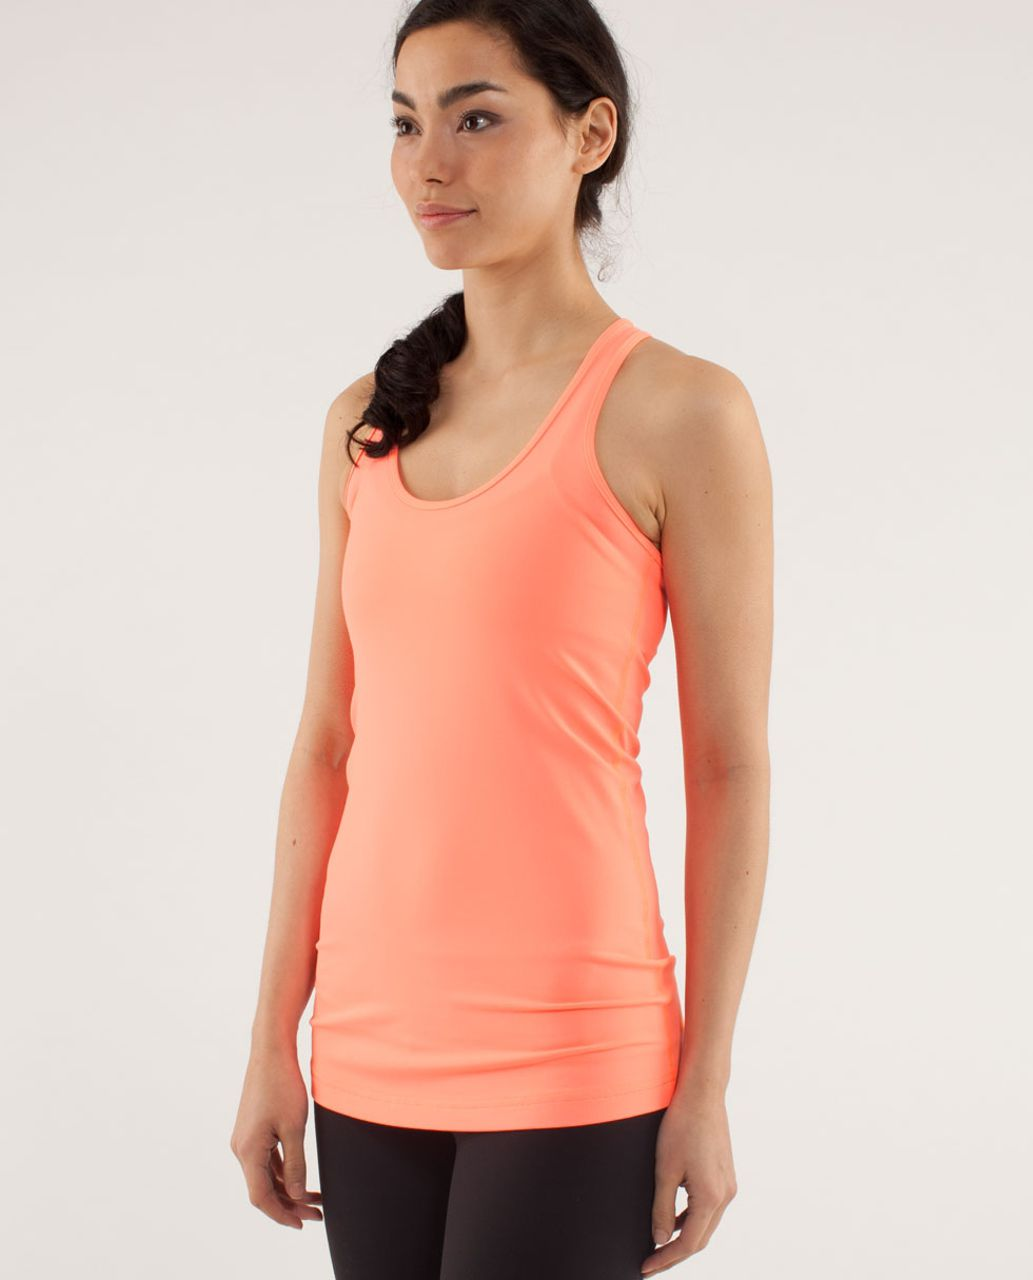 Lululemon Cool Racerback - Pop Orange